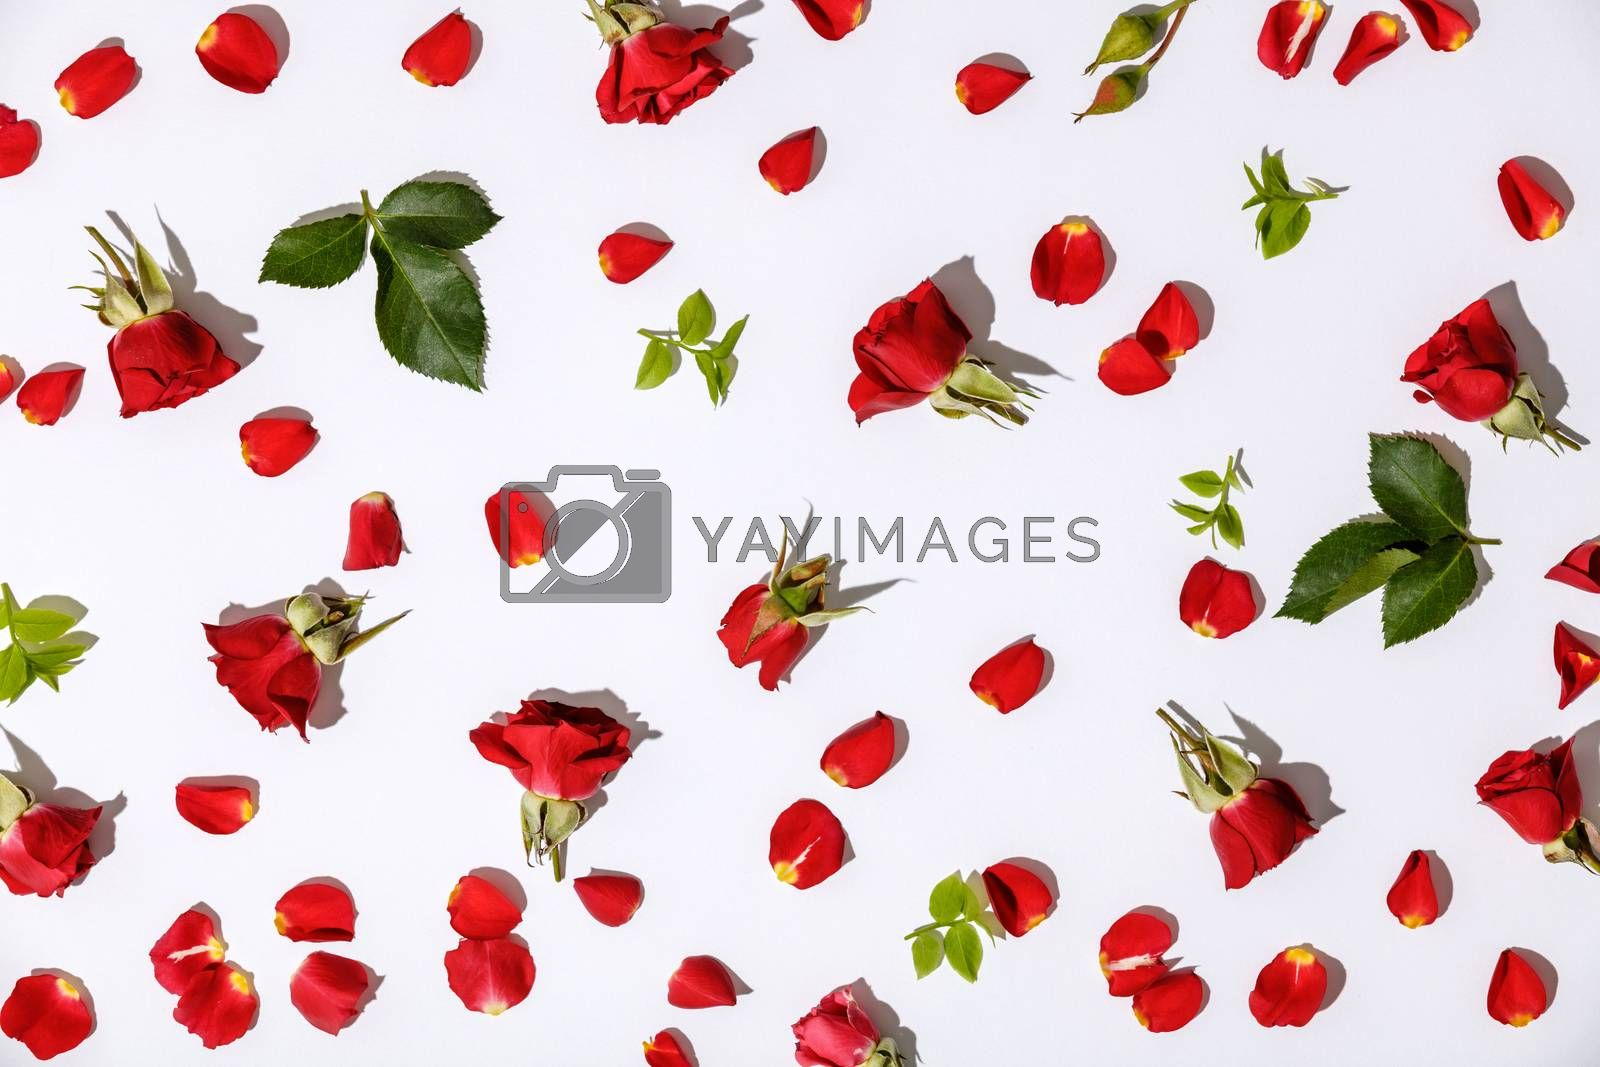 Floral pattern with red roses, petals and leaves on white backgr by klenova